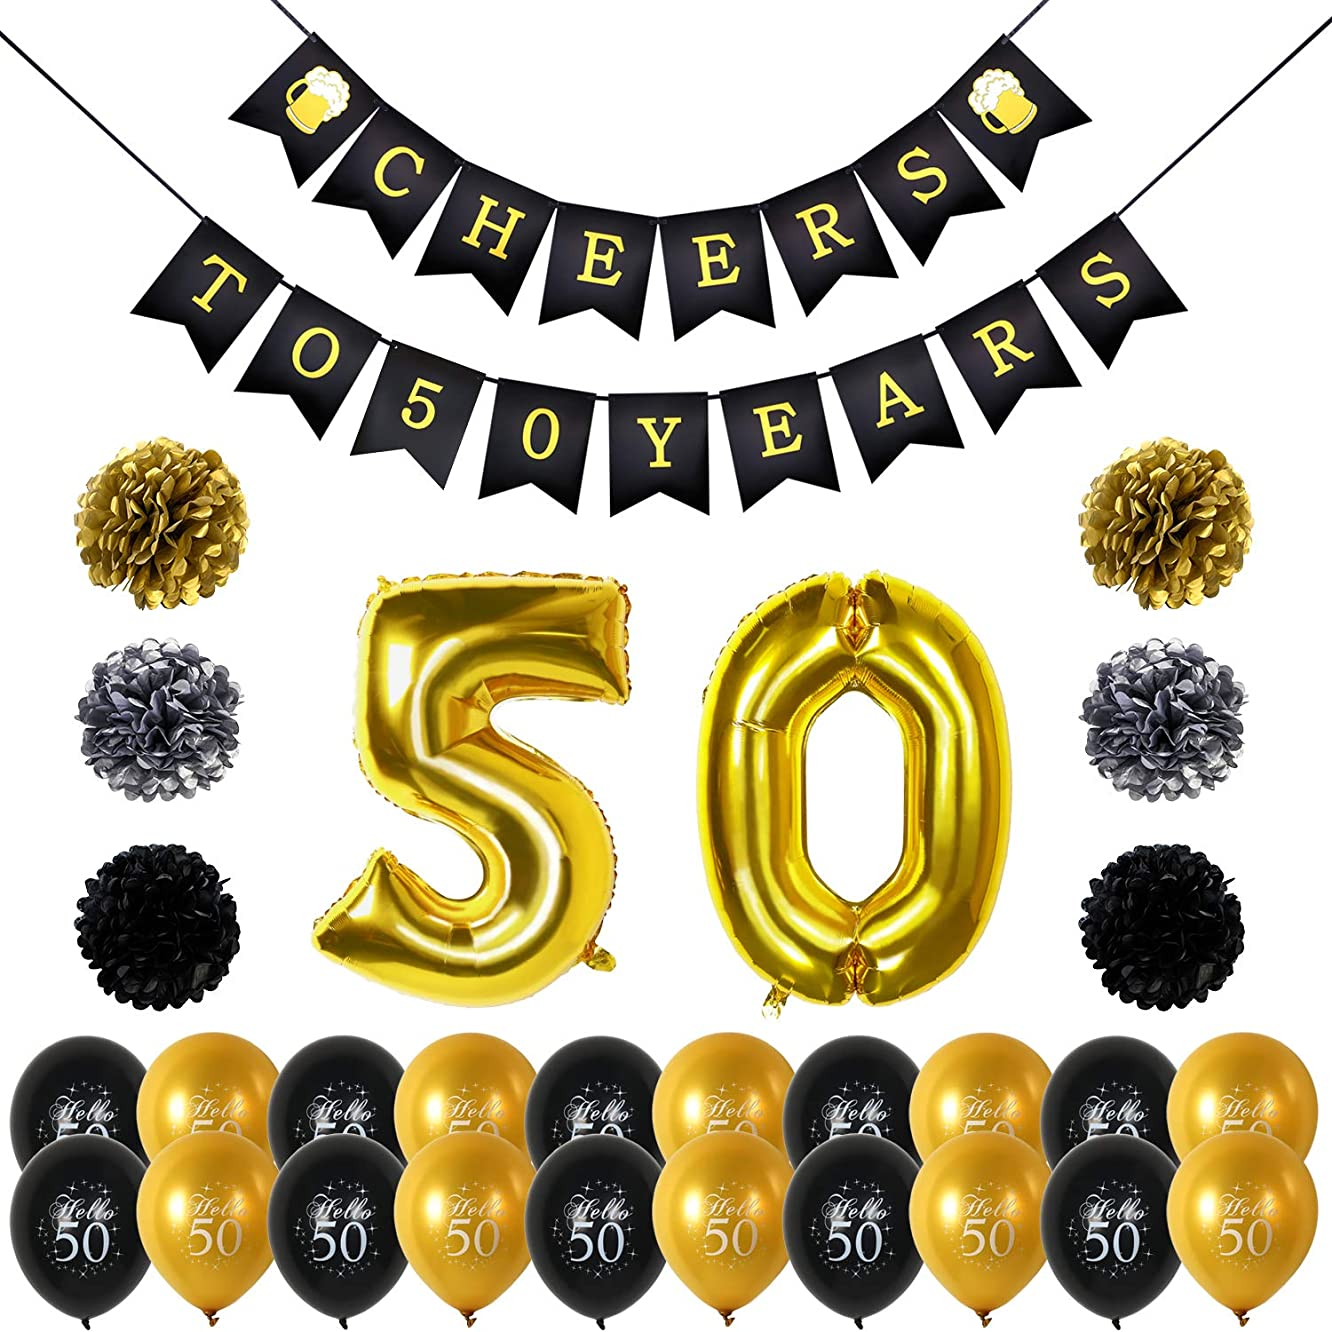 50th Birthday Party Decorations, Konsait Cheers to 50th Birthday Banner, Number 50 Foil Balloons Large, 20pcs Black Gold Latex Hello 50 Balloon, Tissue Paper Pom Poms for 50 Years Old Party Supplies